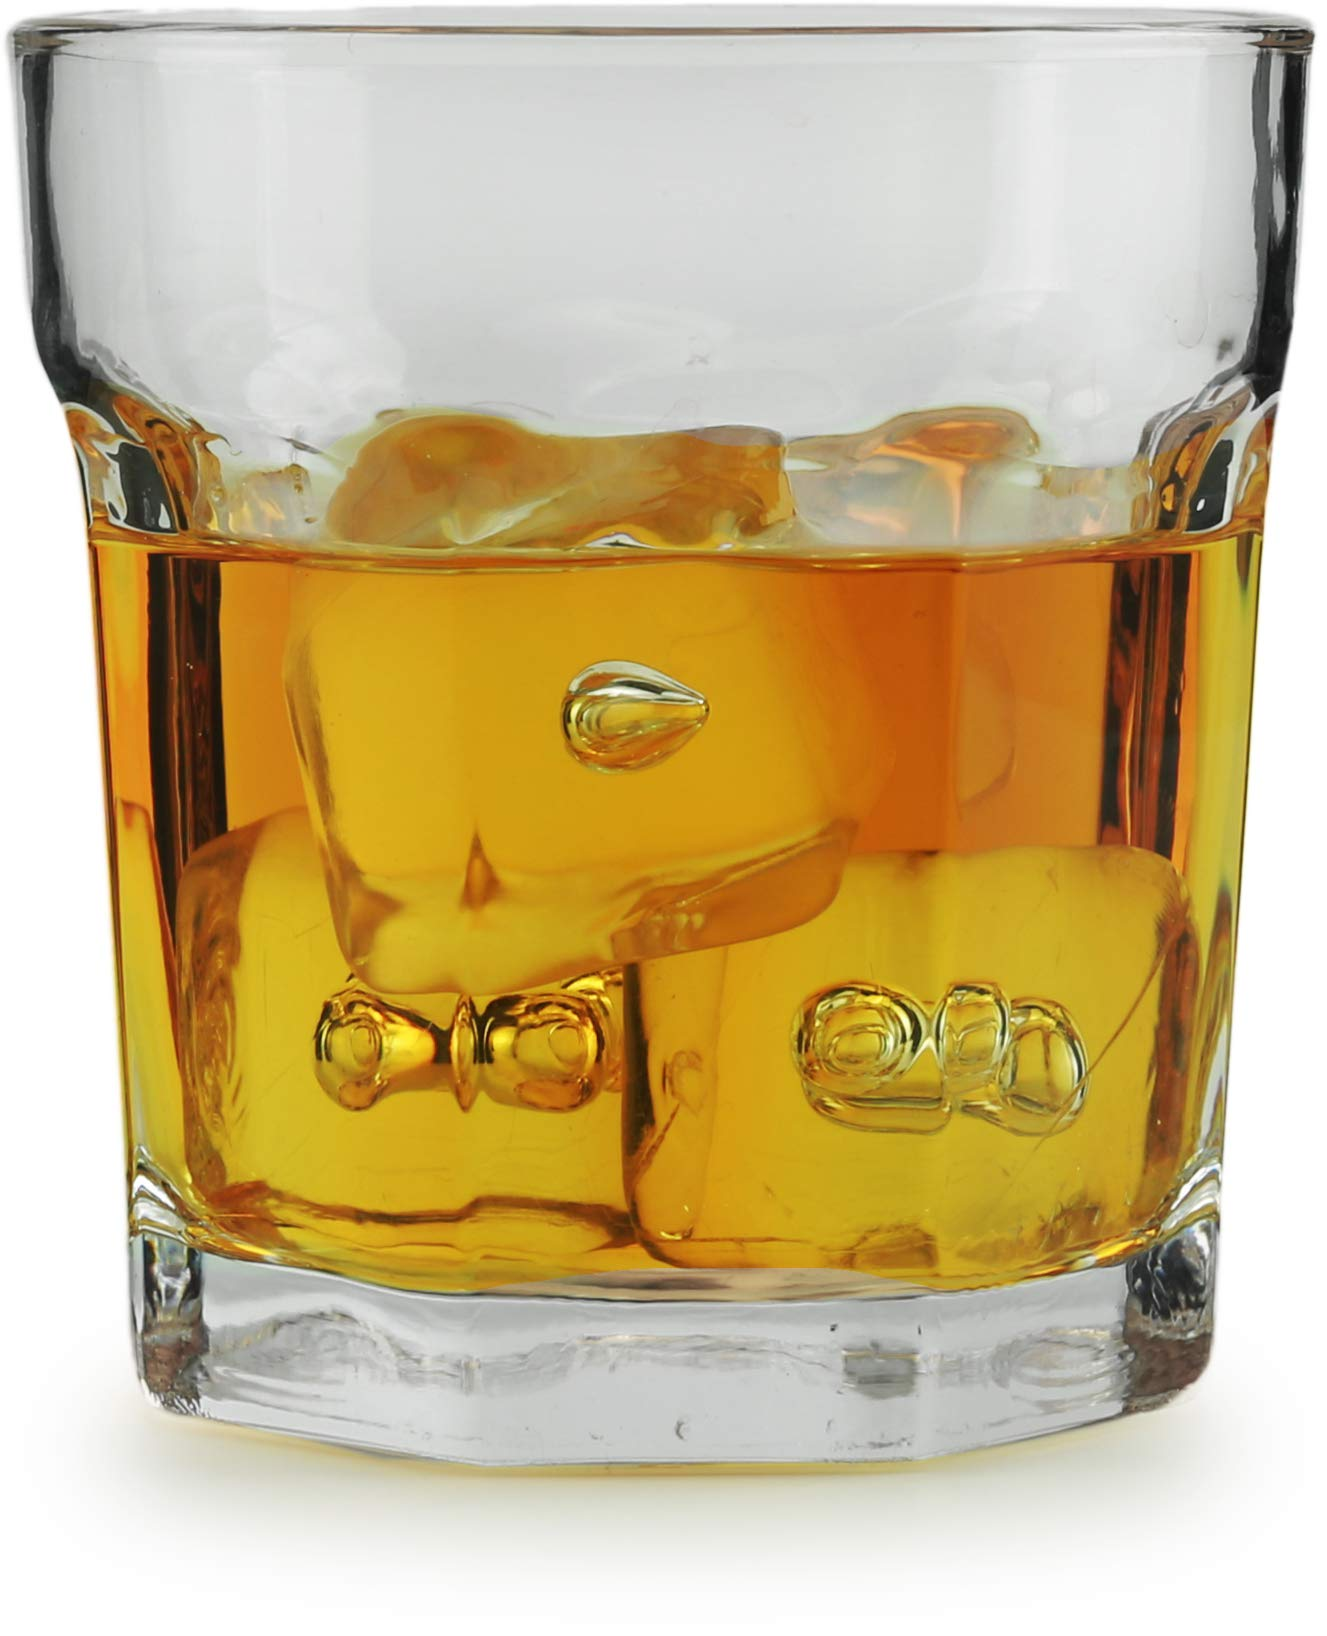 Circleware Heavy Base Whiskey Glass, Set of 6, Home & Kitchen Party Dining Entertainment Beverage Drinking Glassware Cups for Water, Juice, Beer and Bar Liquor Decor Gifts, 10.4 oz Rock Riverton